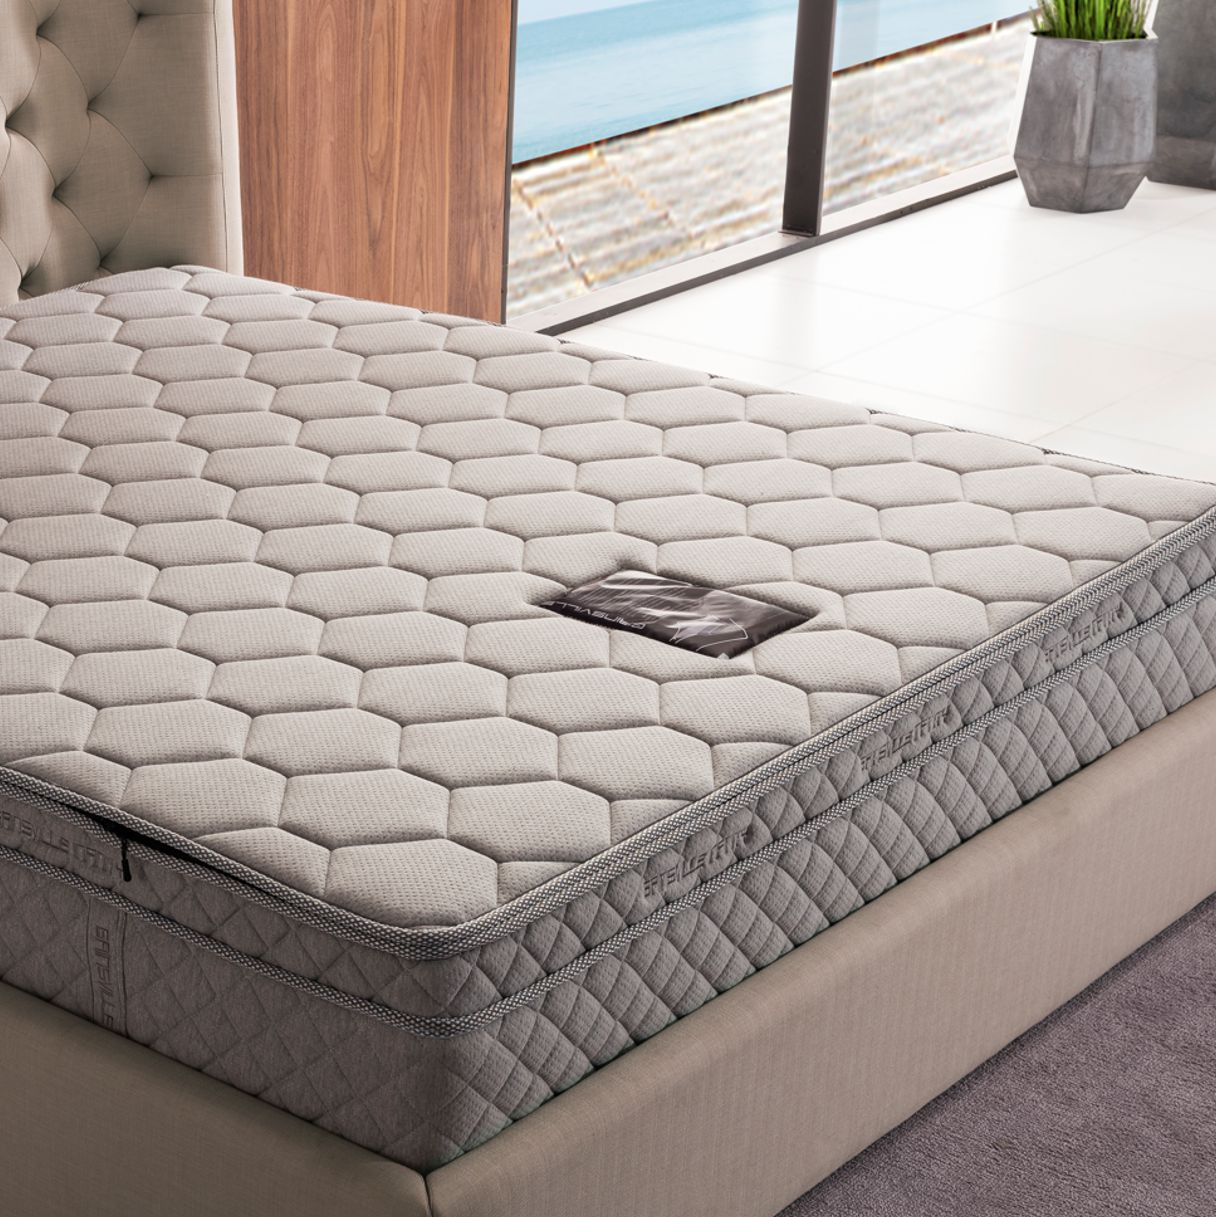 Infinity Cloud Mattress